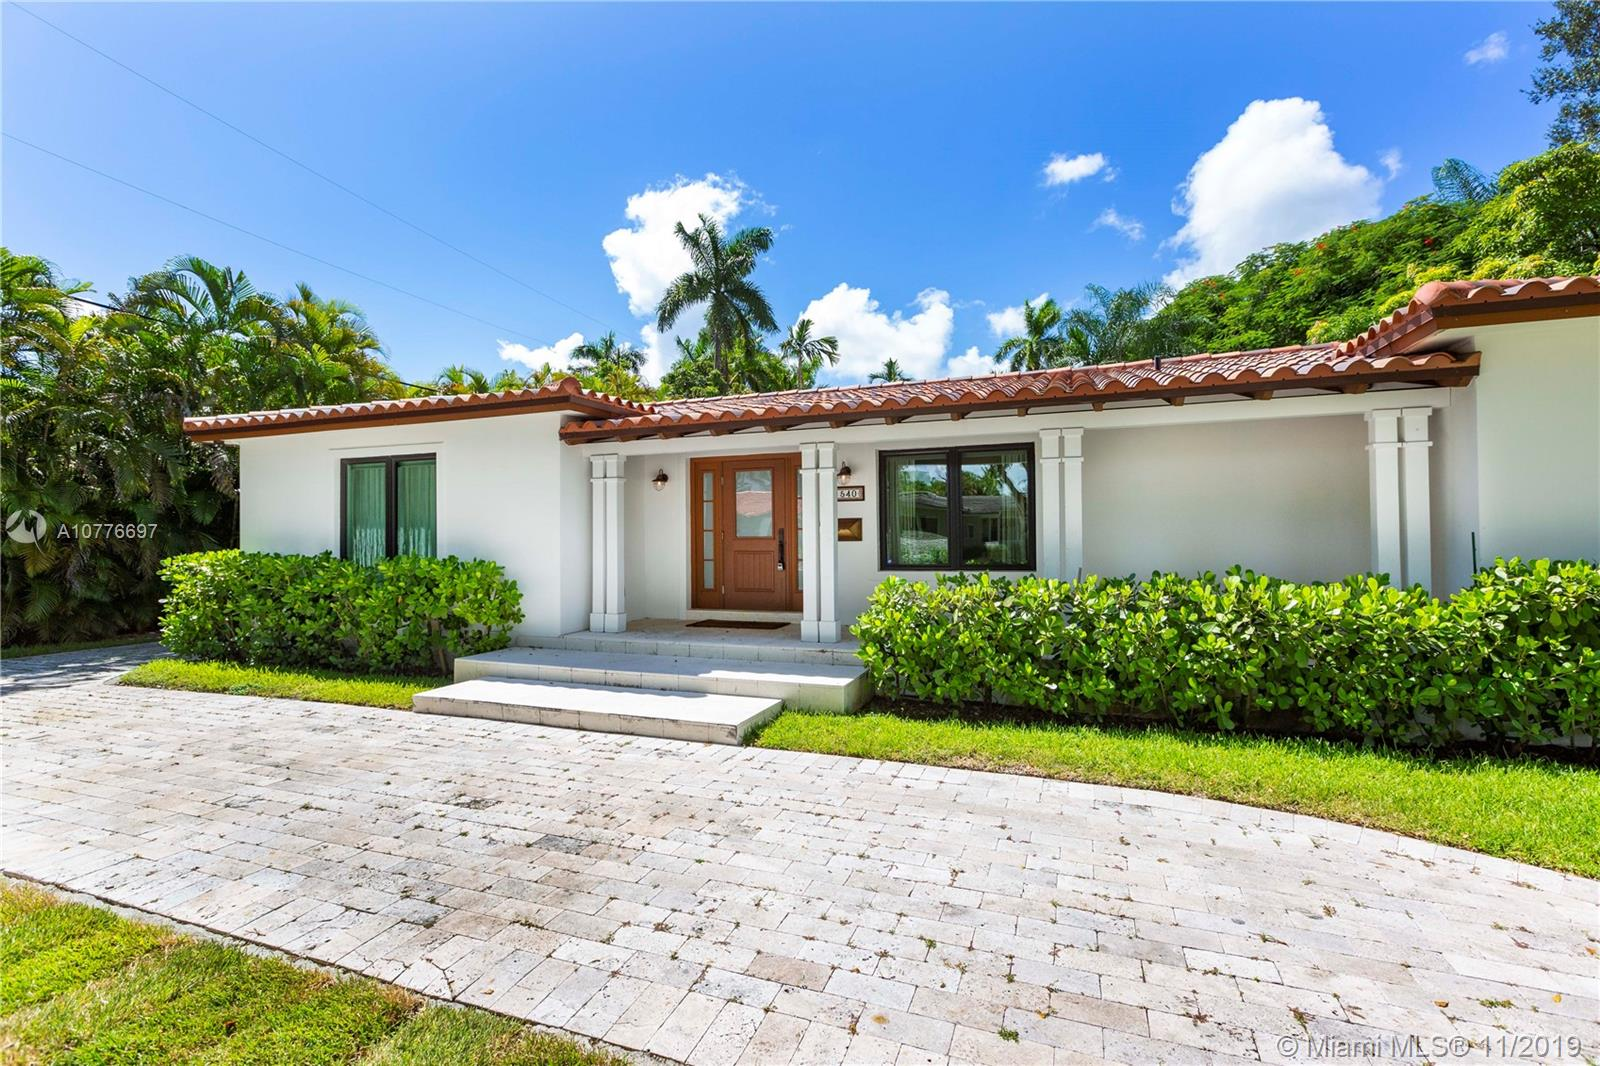 1540  Mercado Ave  For Sale A10776697, FL